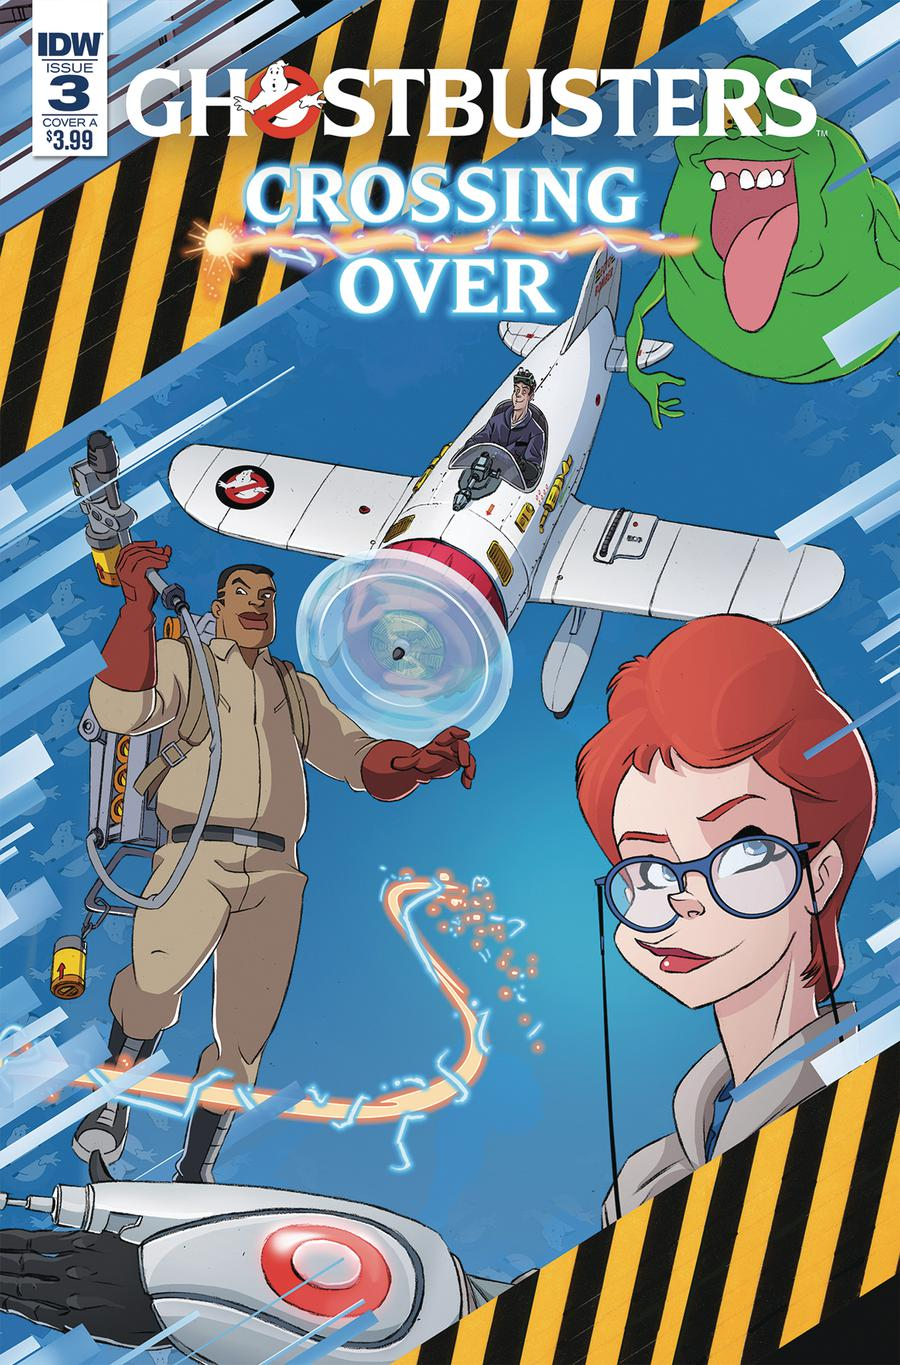 Ghostbusters Crossing Over #3 Cover A Regular Dan Schoening Cover